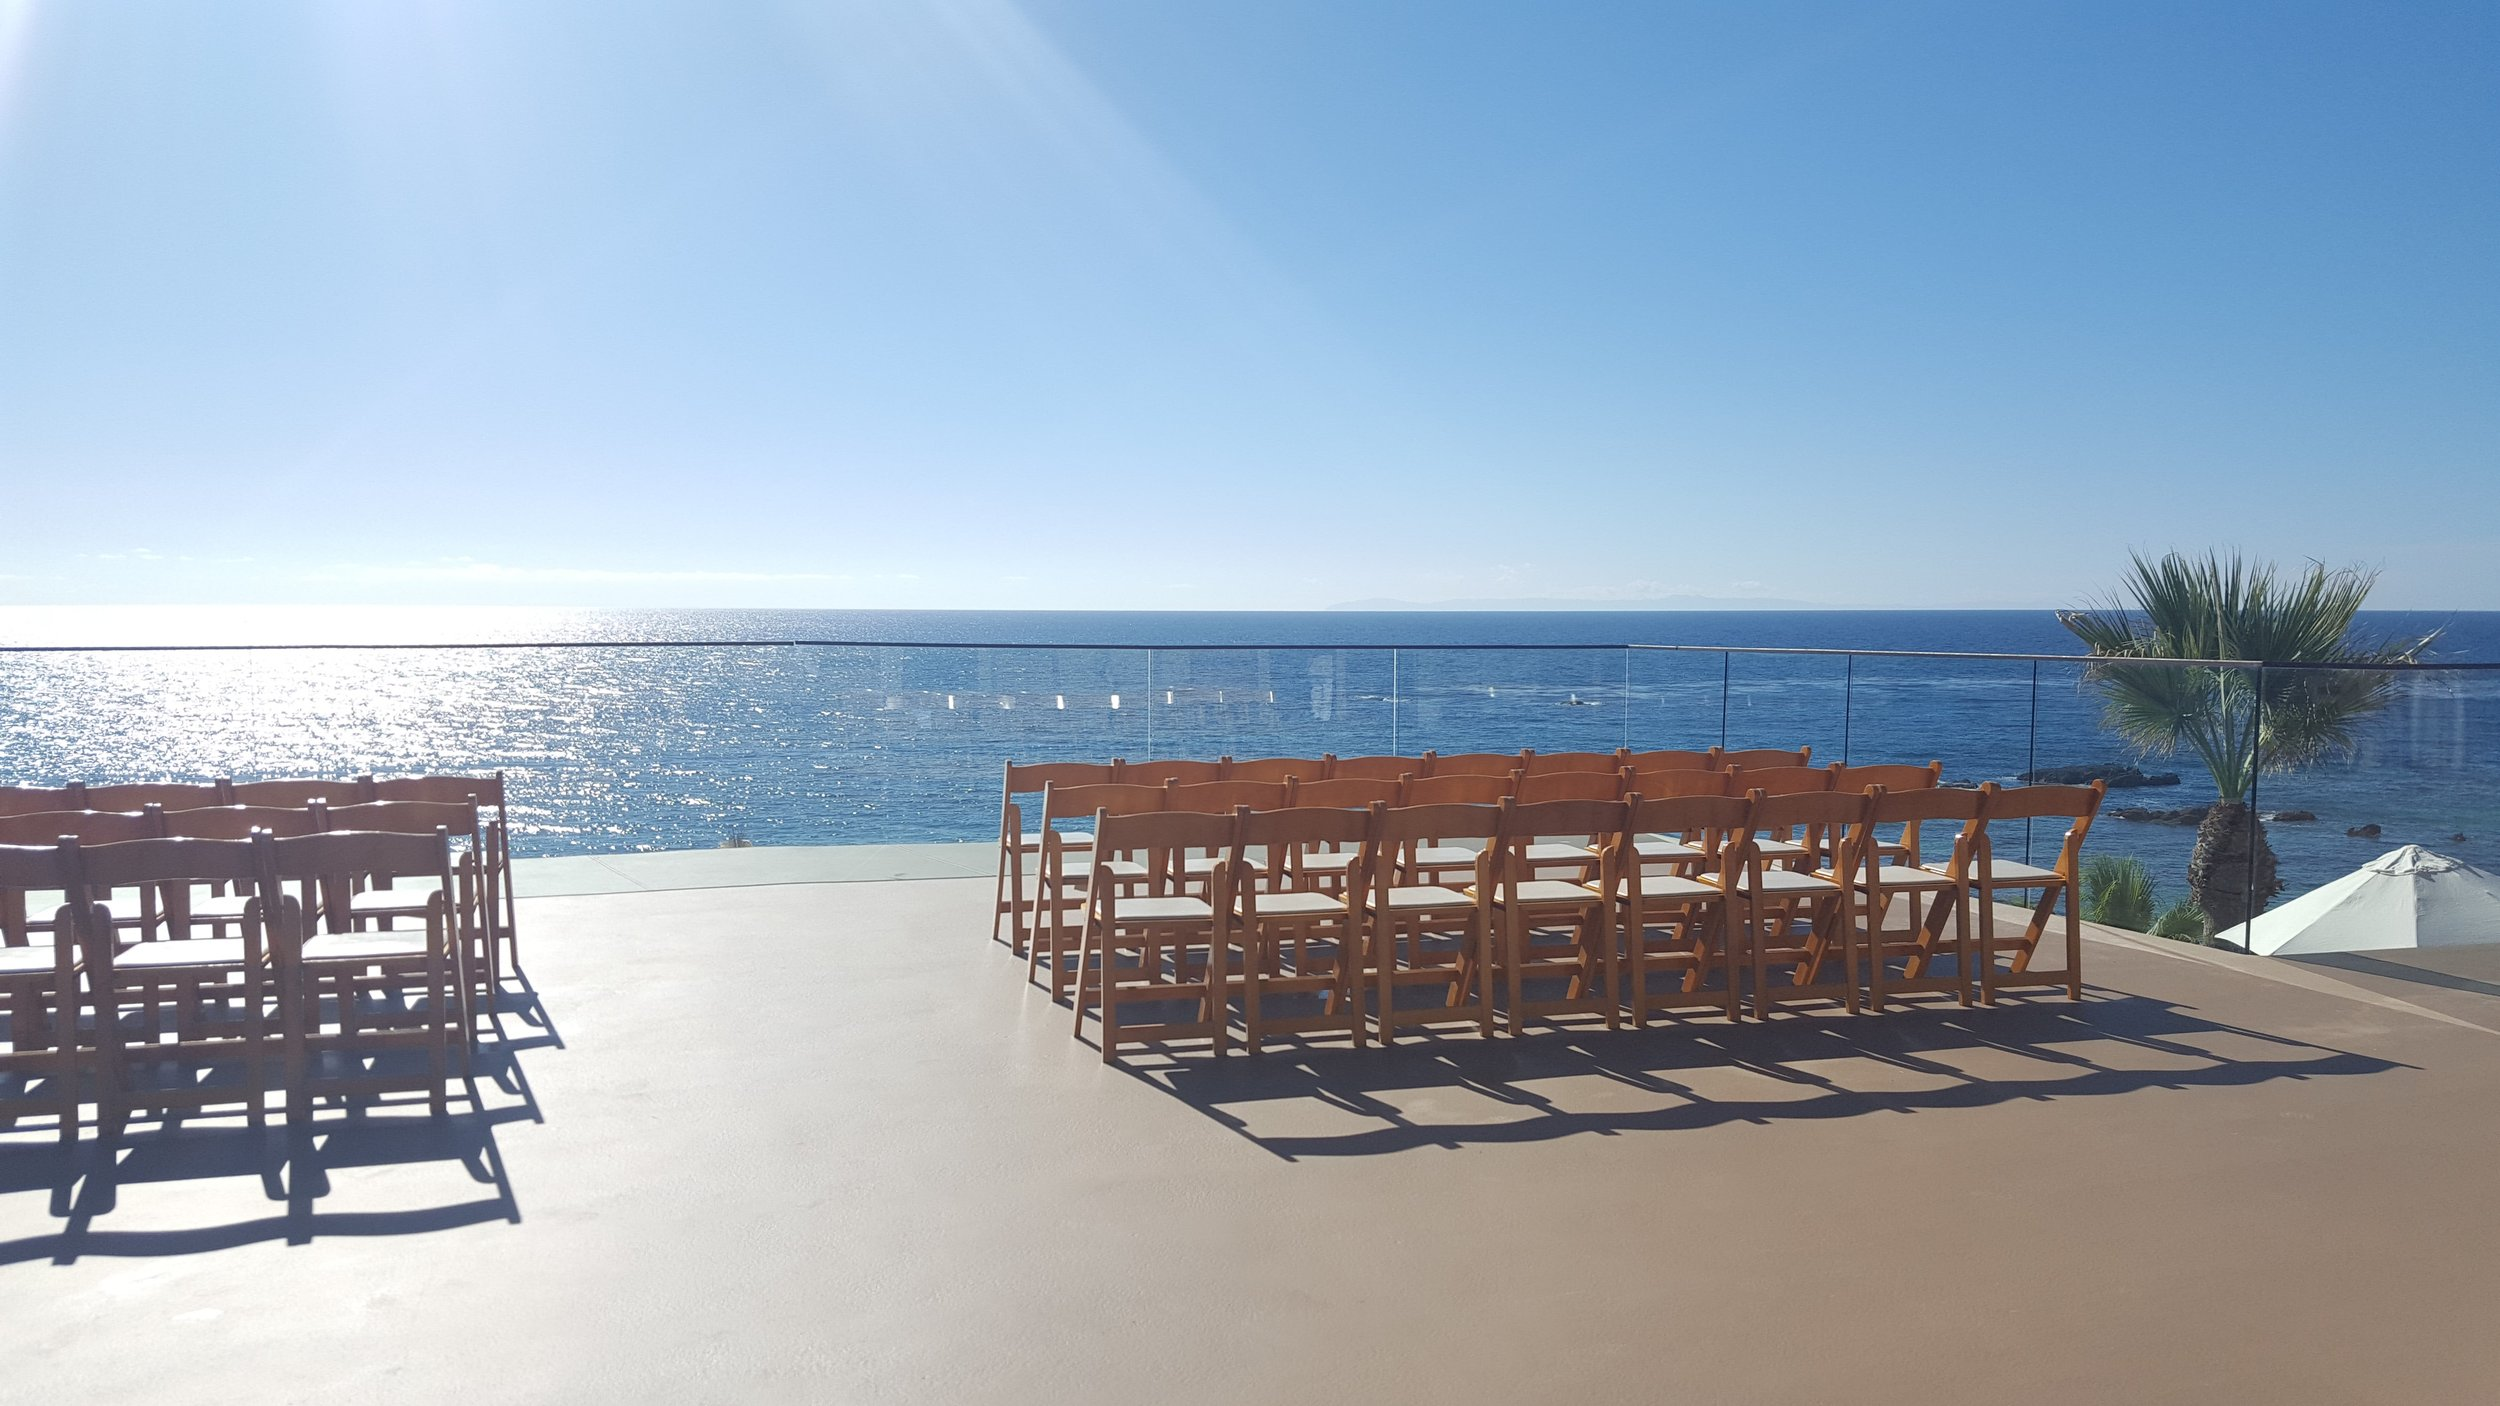 One of the beachfront wedding locations we visited.